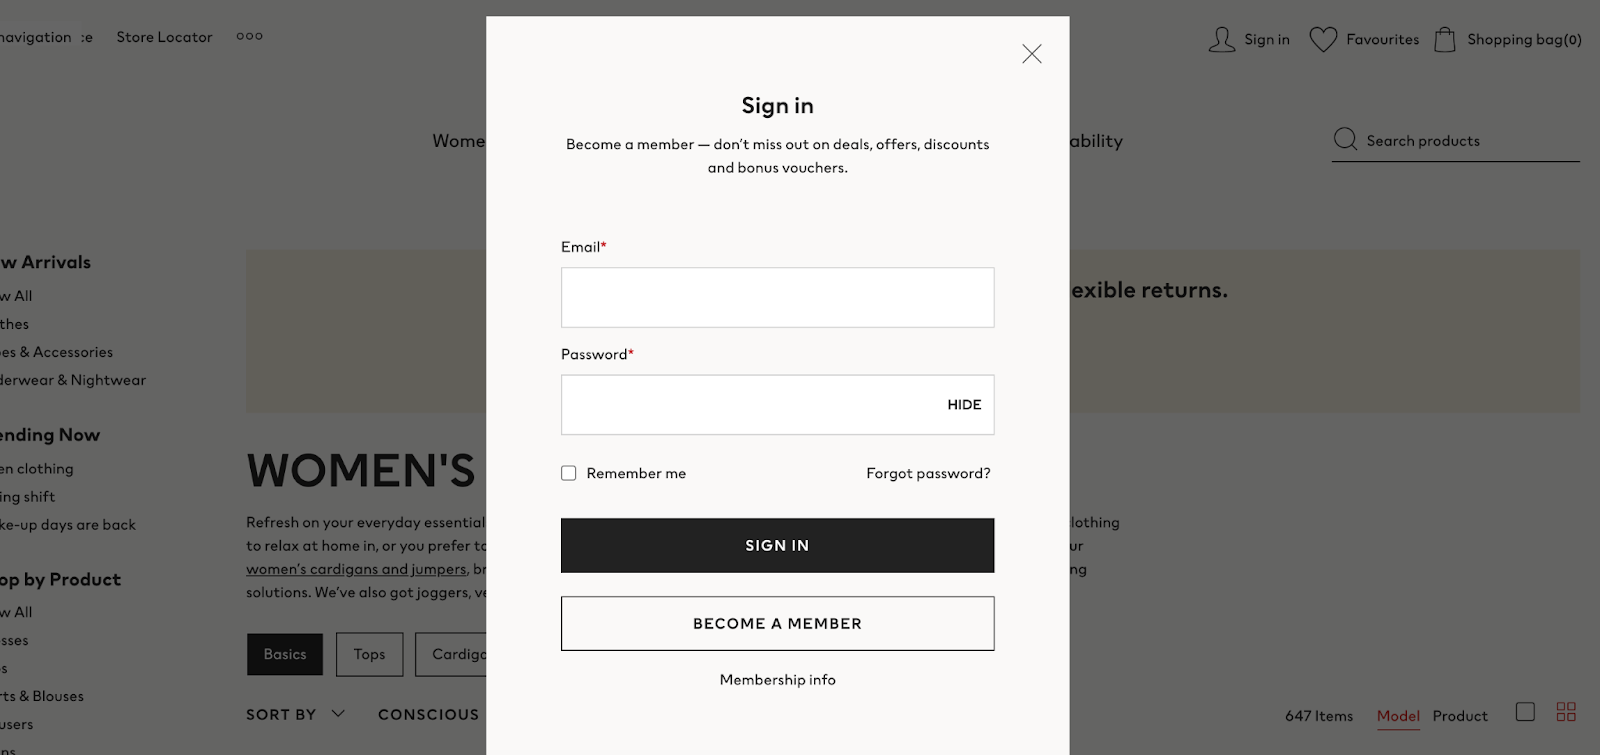 sign in form screenshot